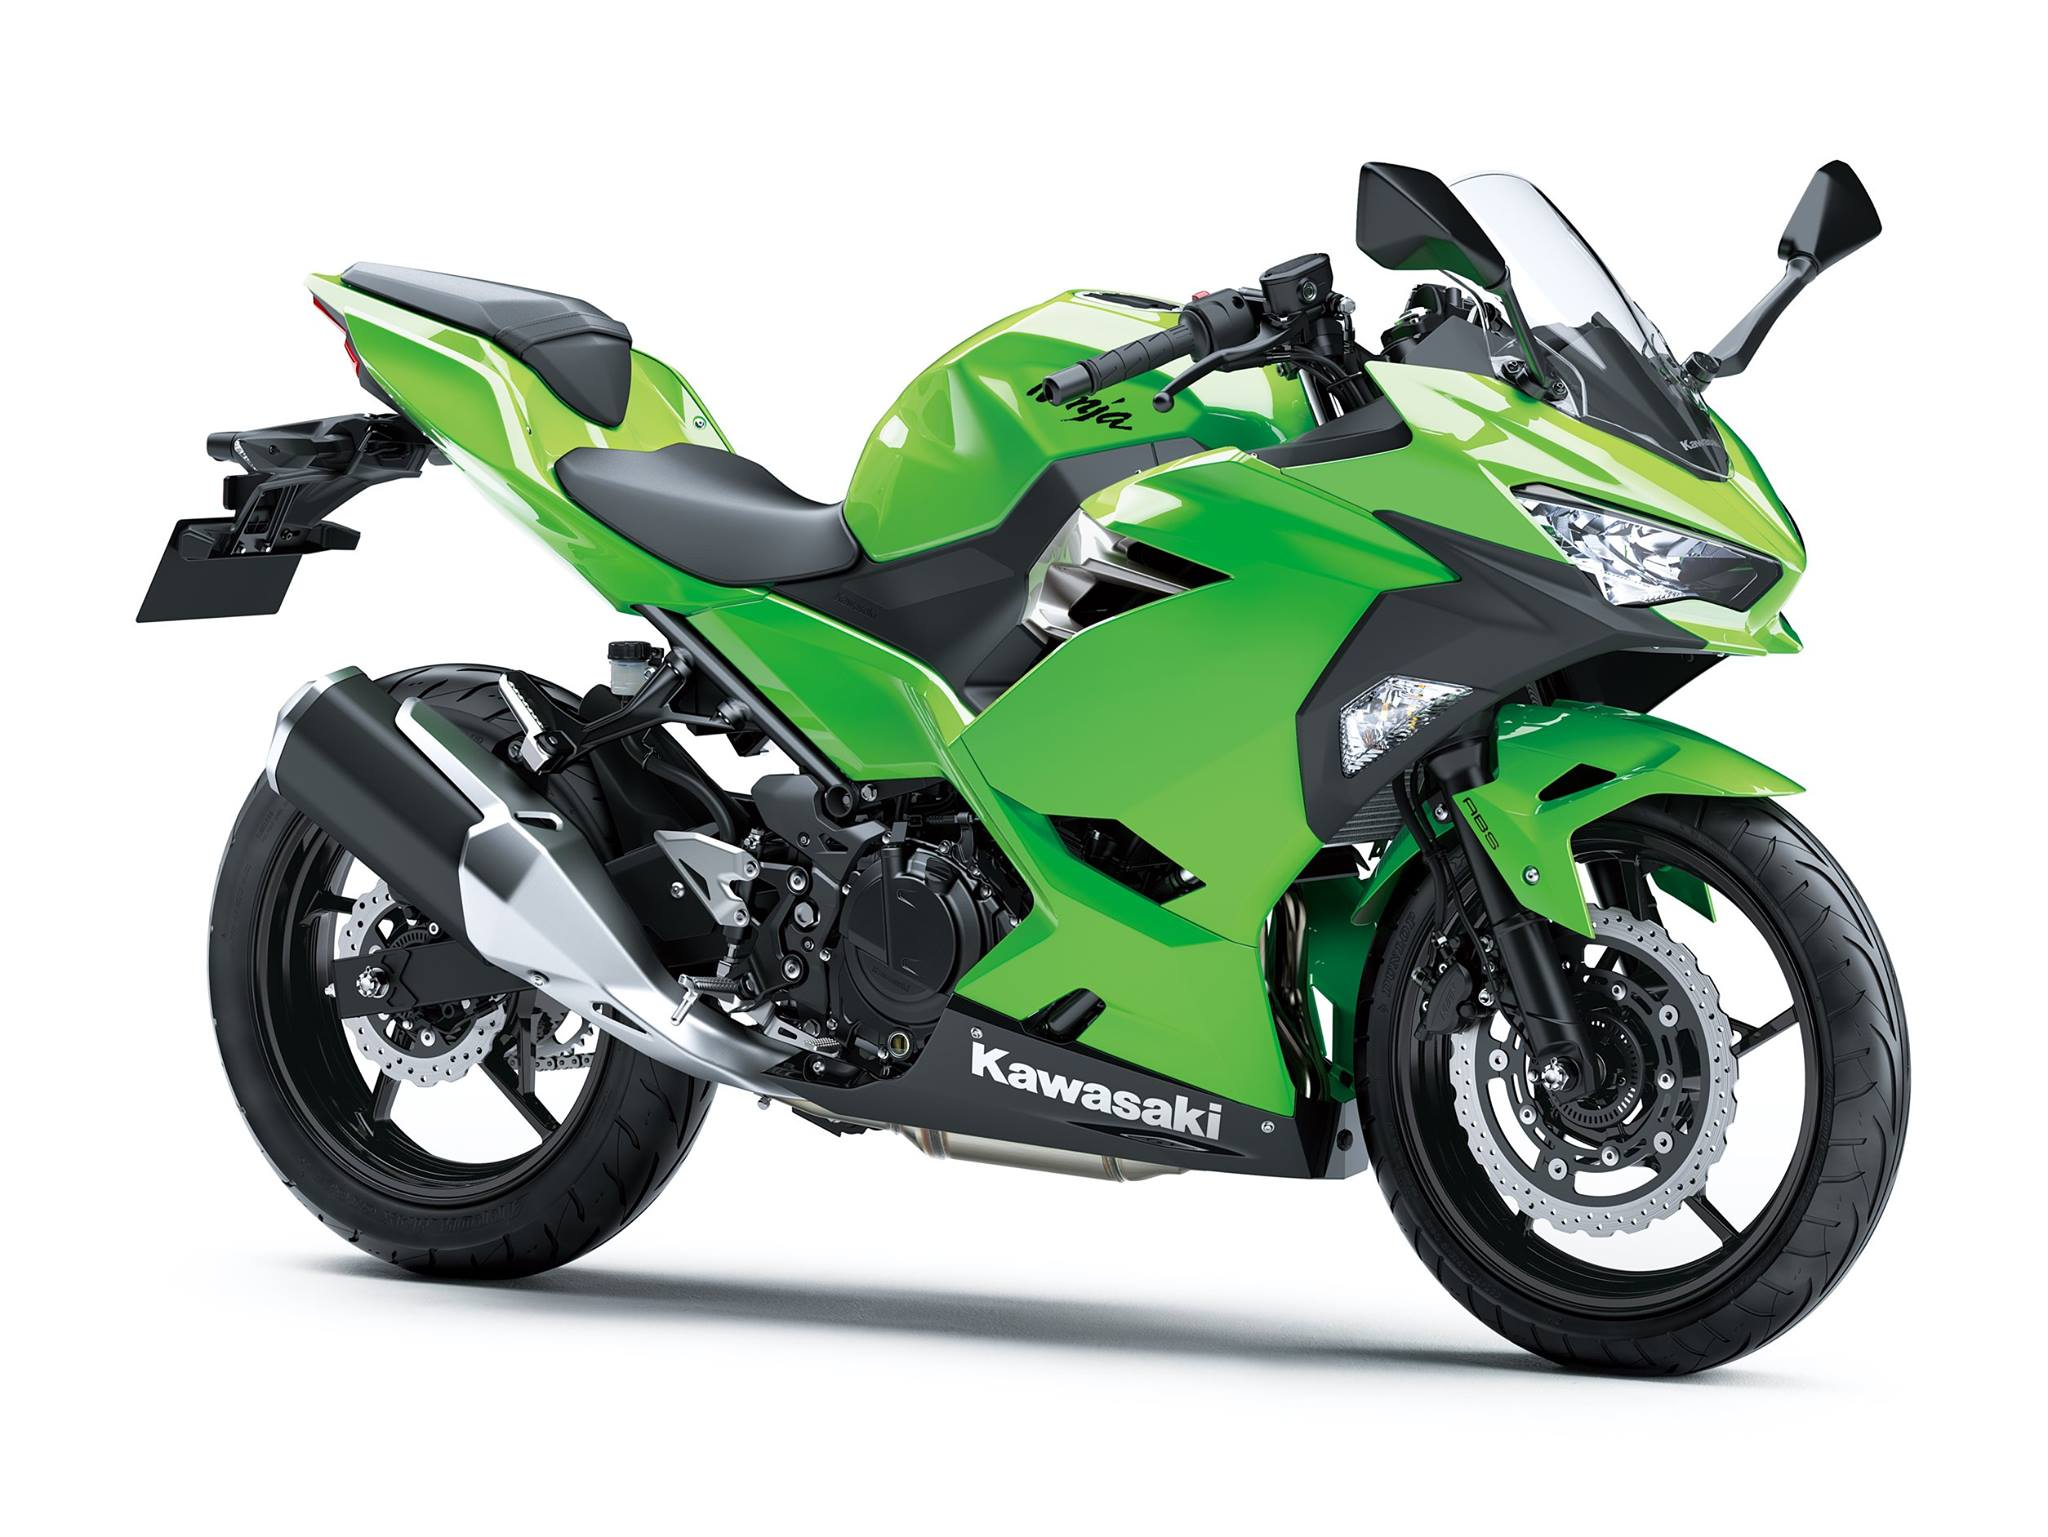 All New Kawasaki Ninja 250 FI Versi 2018 Warna Hijau Polos 3 p7